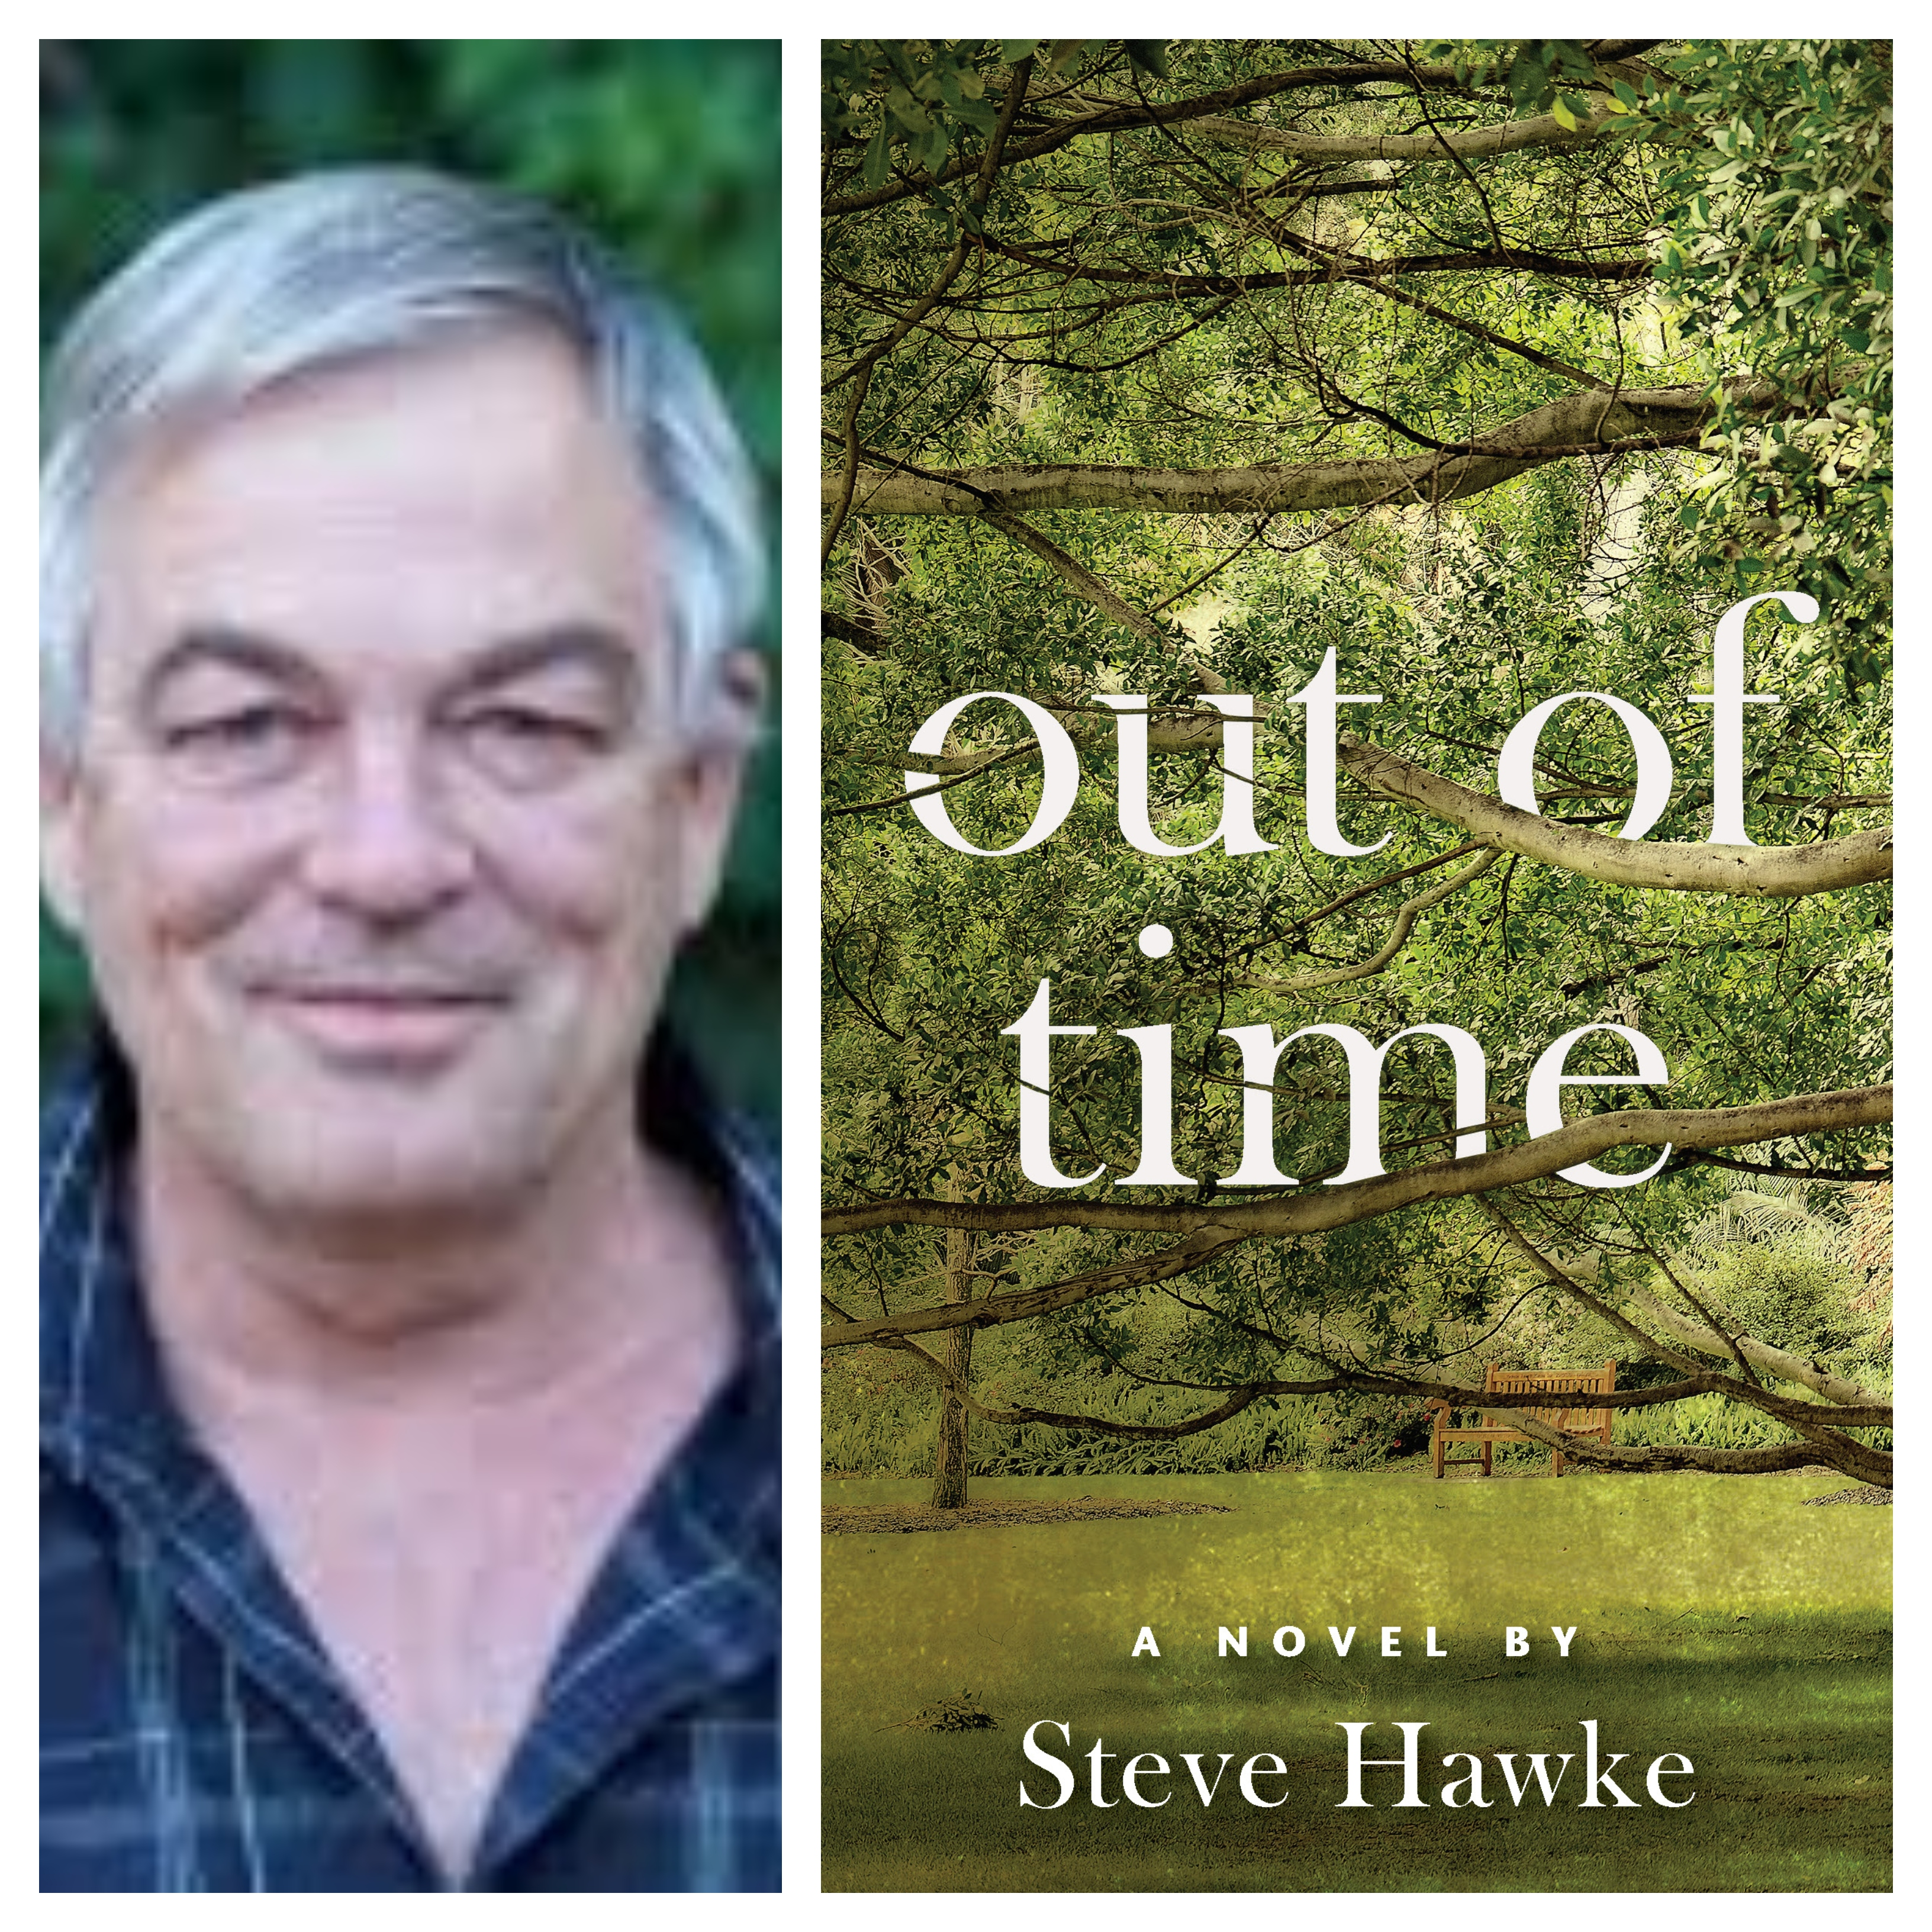 Steve Hawke on his new book: Out Of Time.